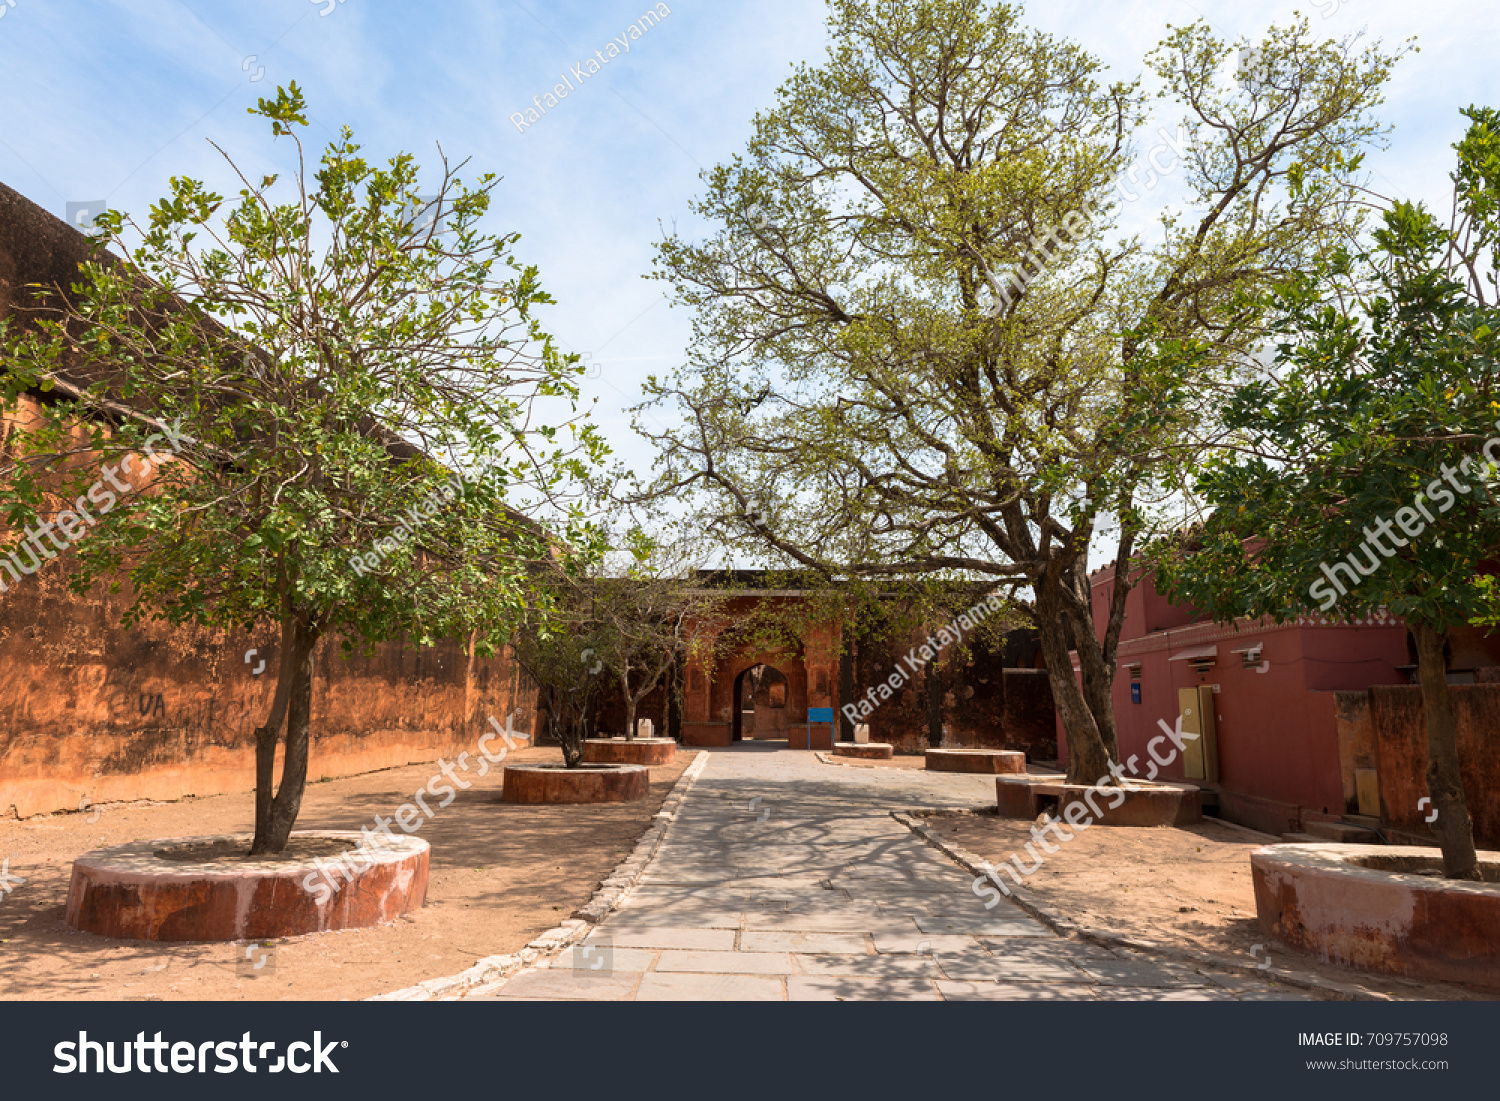 Horizontal Picture Courtyard Trees Jaigarh Fort Royalty